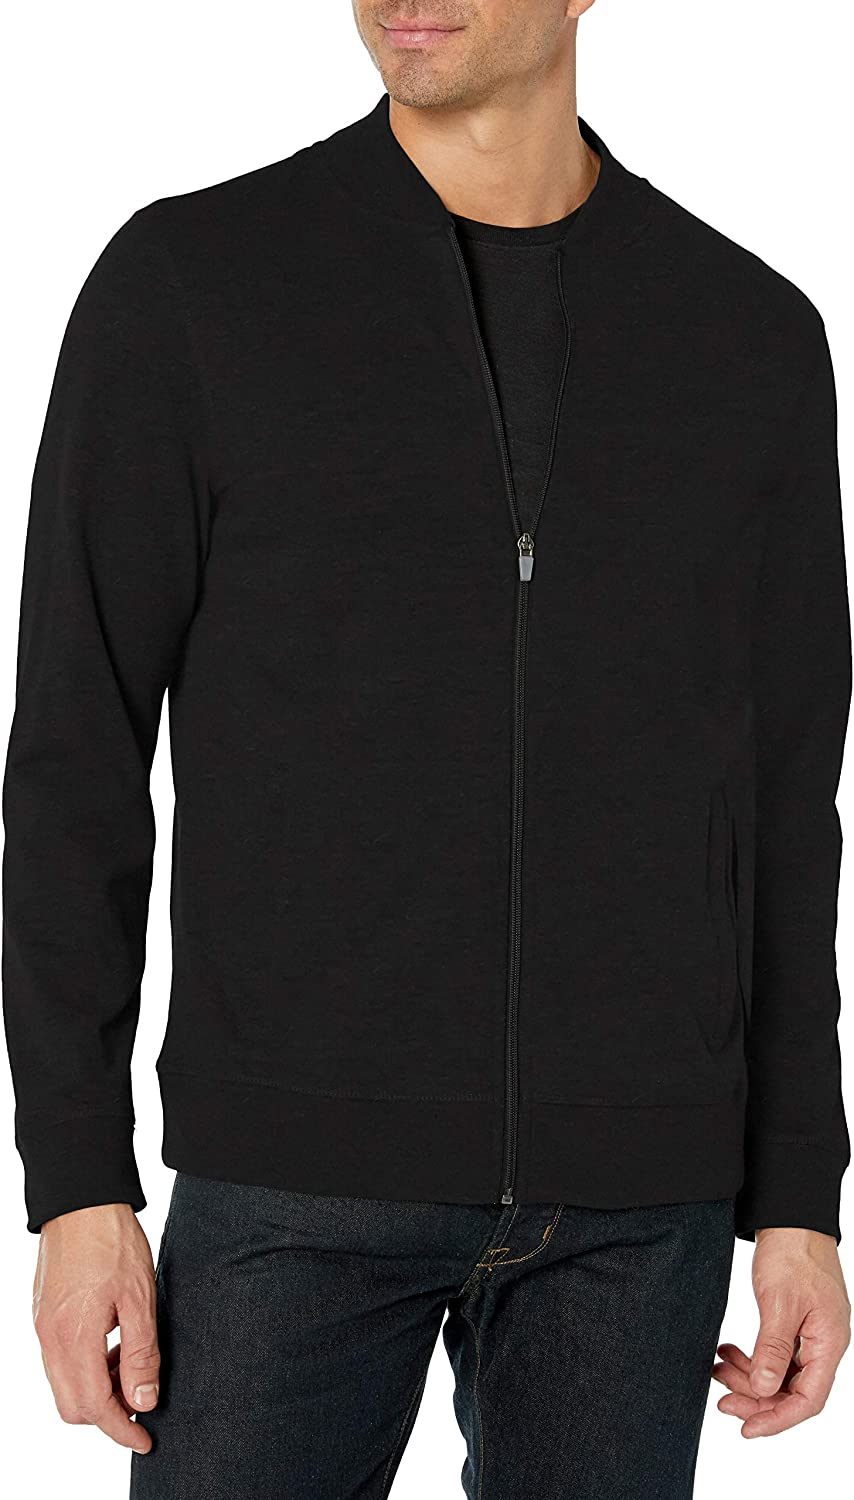 Charles Max 83% OFF River Apparel Adventure Men's Credence Jacket